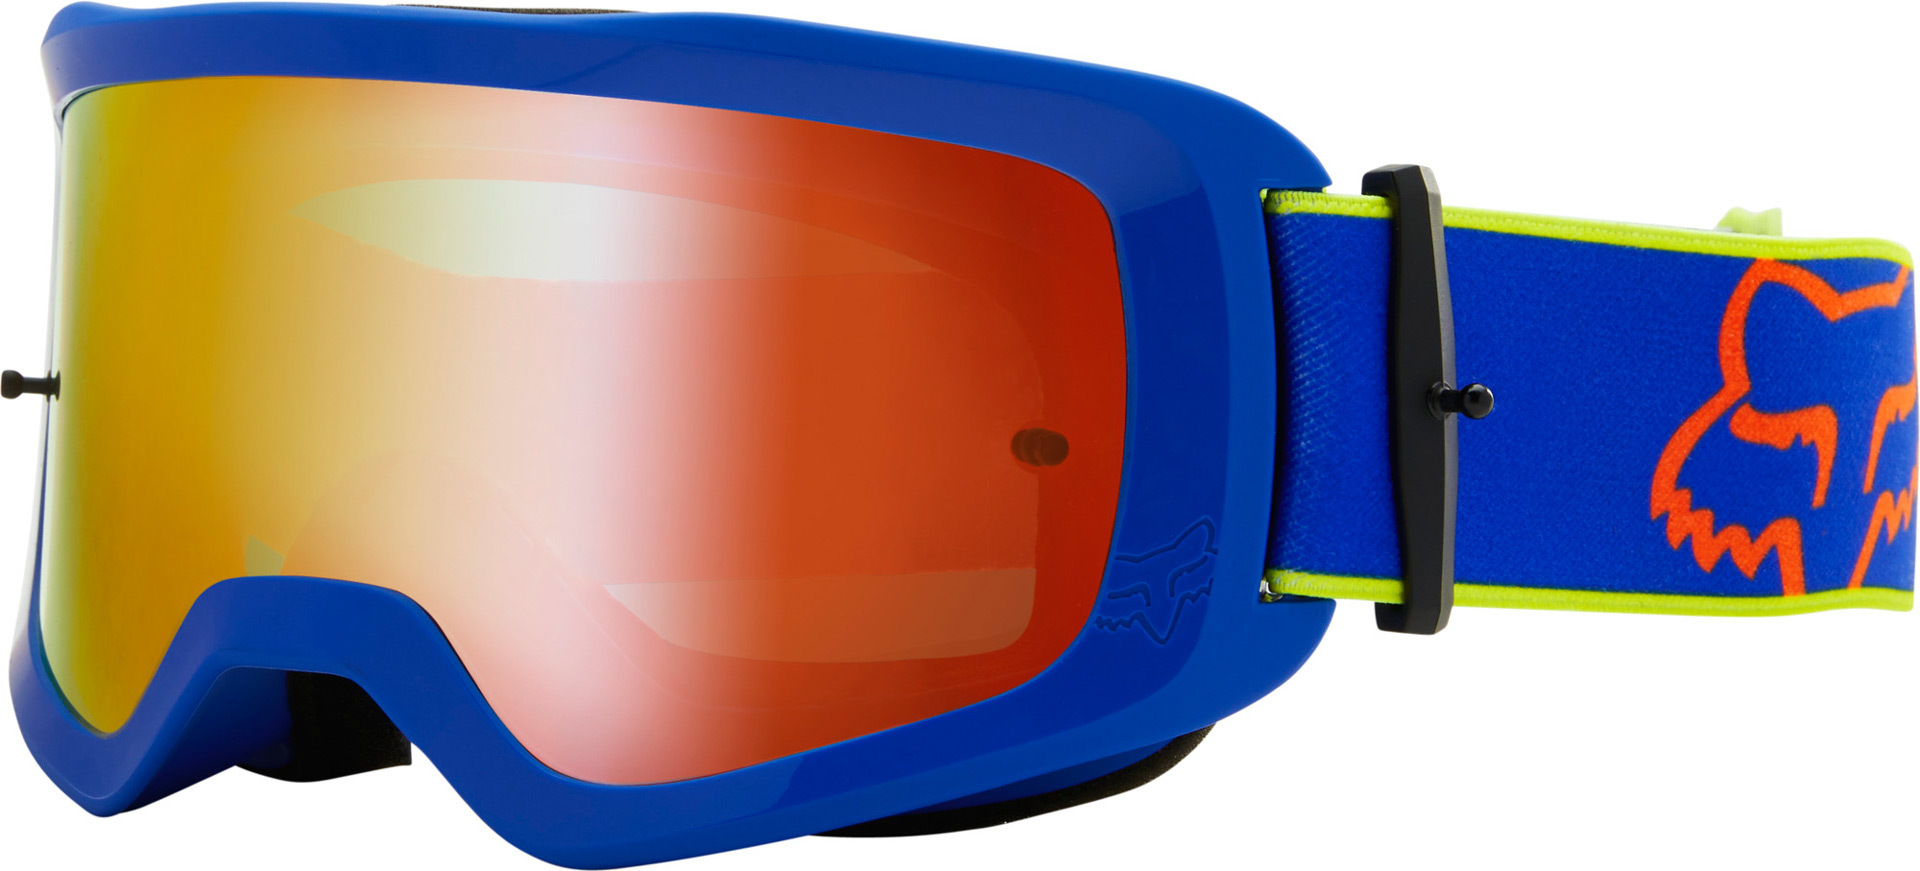 FOX Main Oktiv Spark Tear-Off Motocross Brille, blau, blau